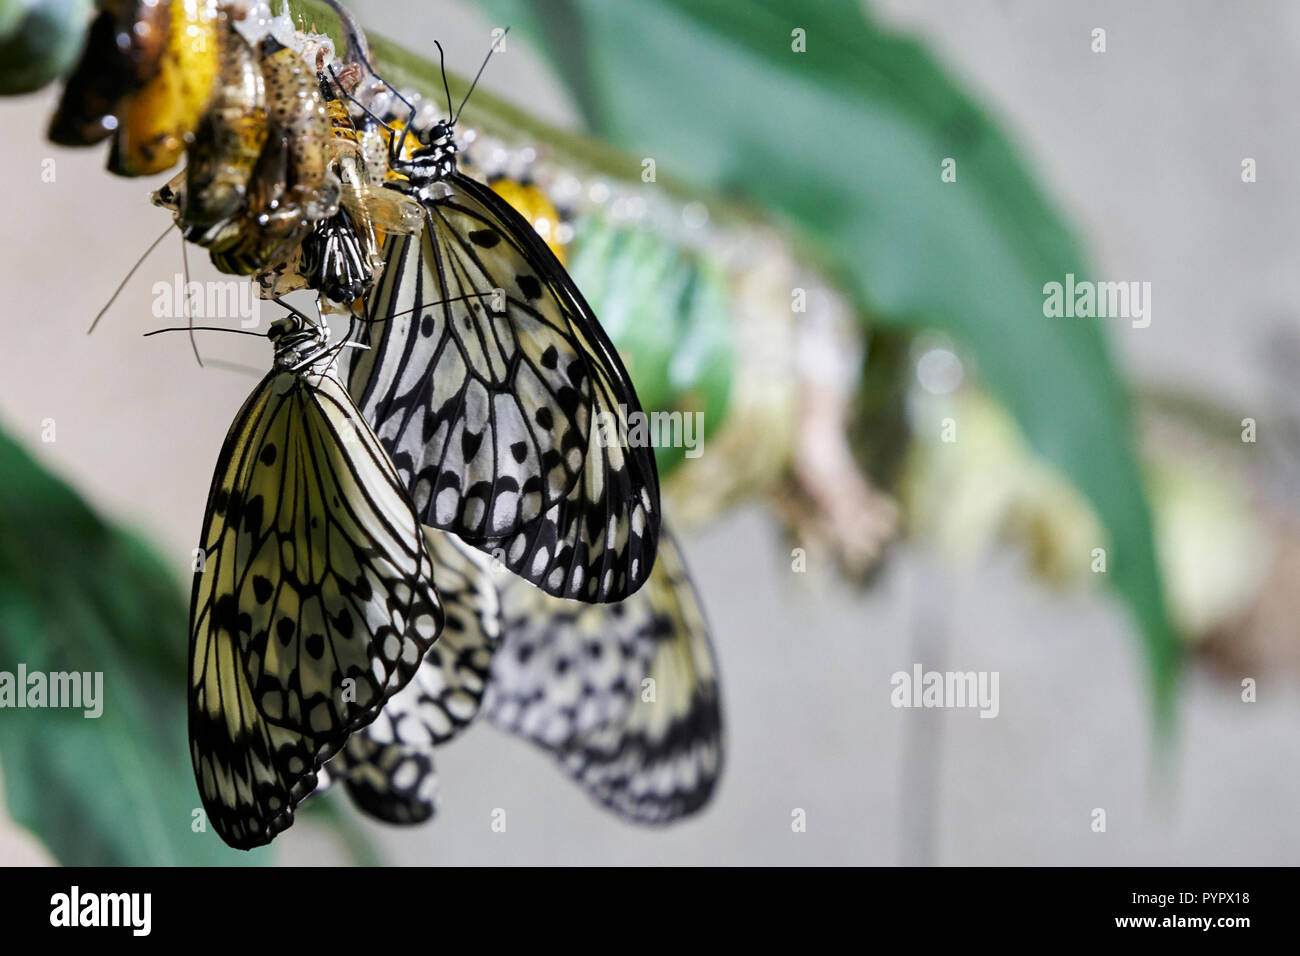 Metamorphosis of a Butterfly - Stock Image